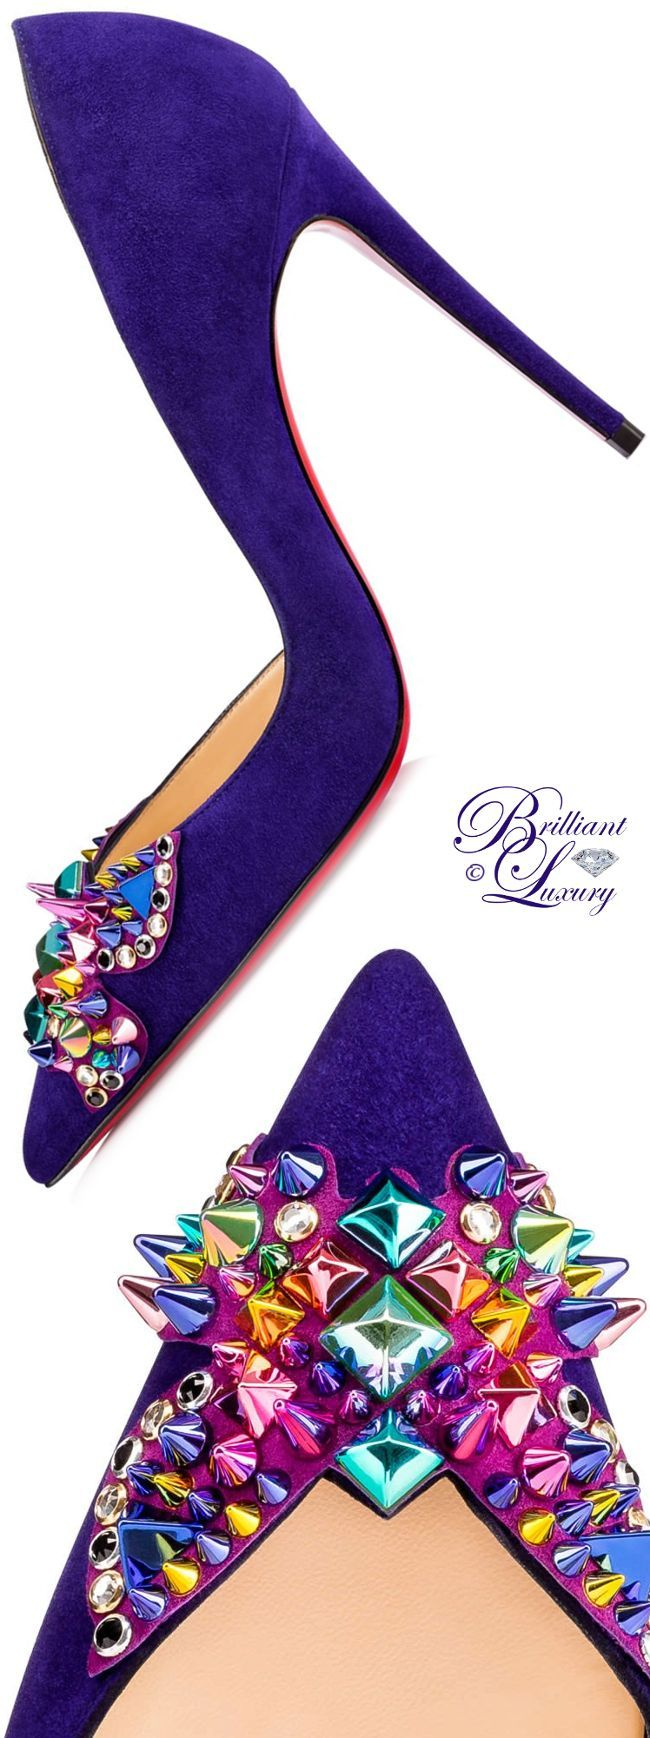 Brillanter Luxus ♦ Christian Louboutin Farfaclou Kalbsamt